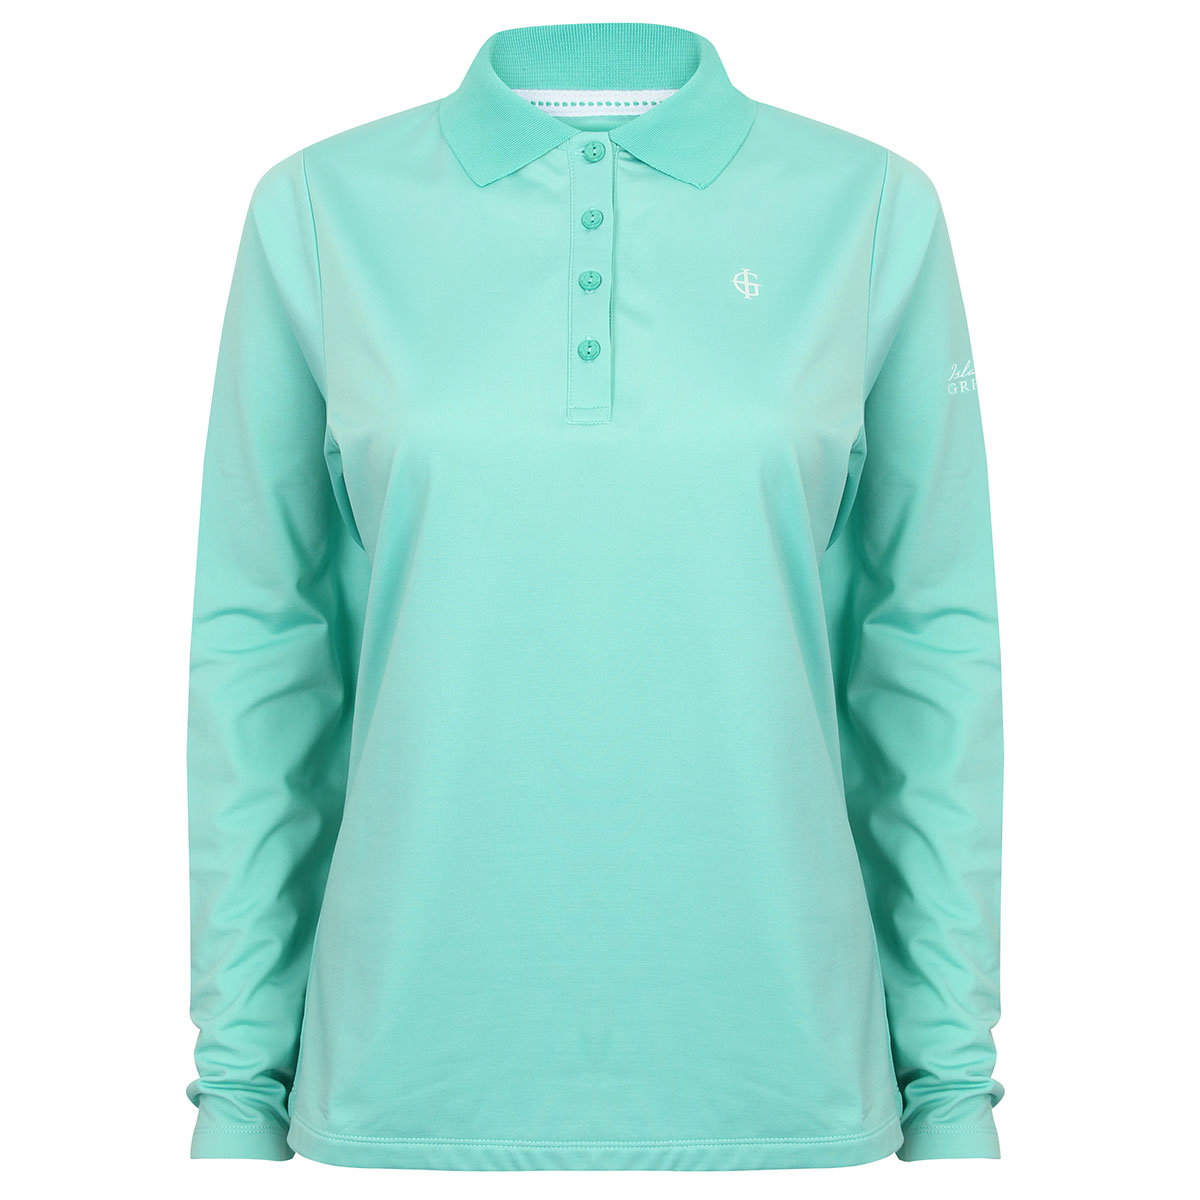 32 off rrp island green 2017 ladies long sleeve 4 button for Long sleeve golf polo shirts